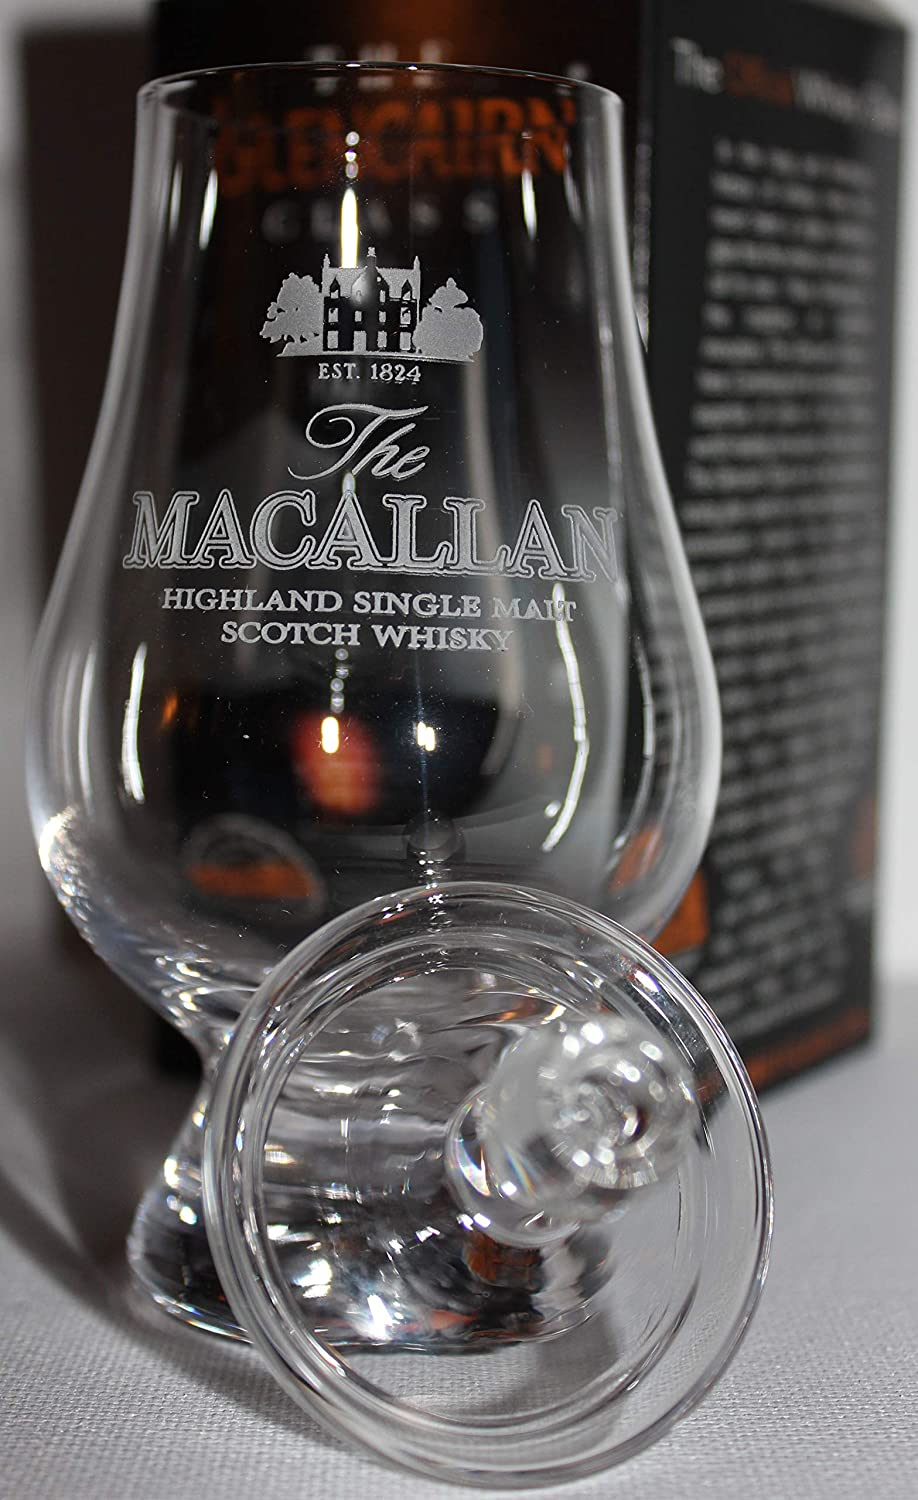 MACALLAN GLENCAIRN MALT SCOTCH WHISKY TASTING GLASS WITH GINGER JAR TOP